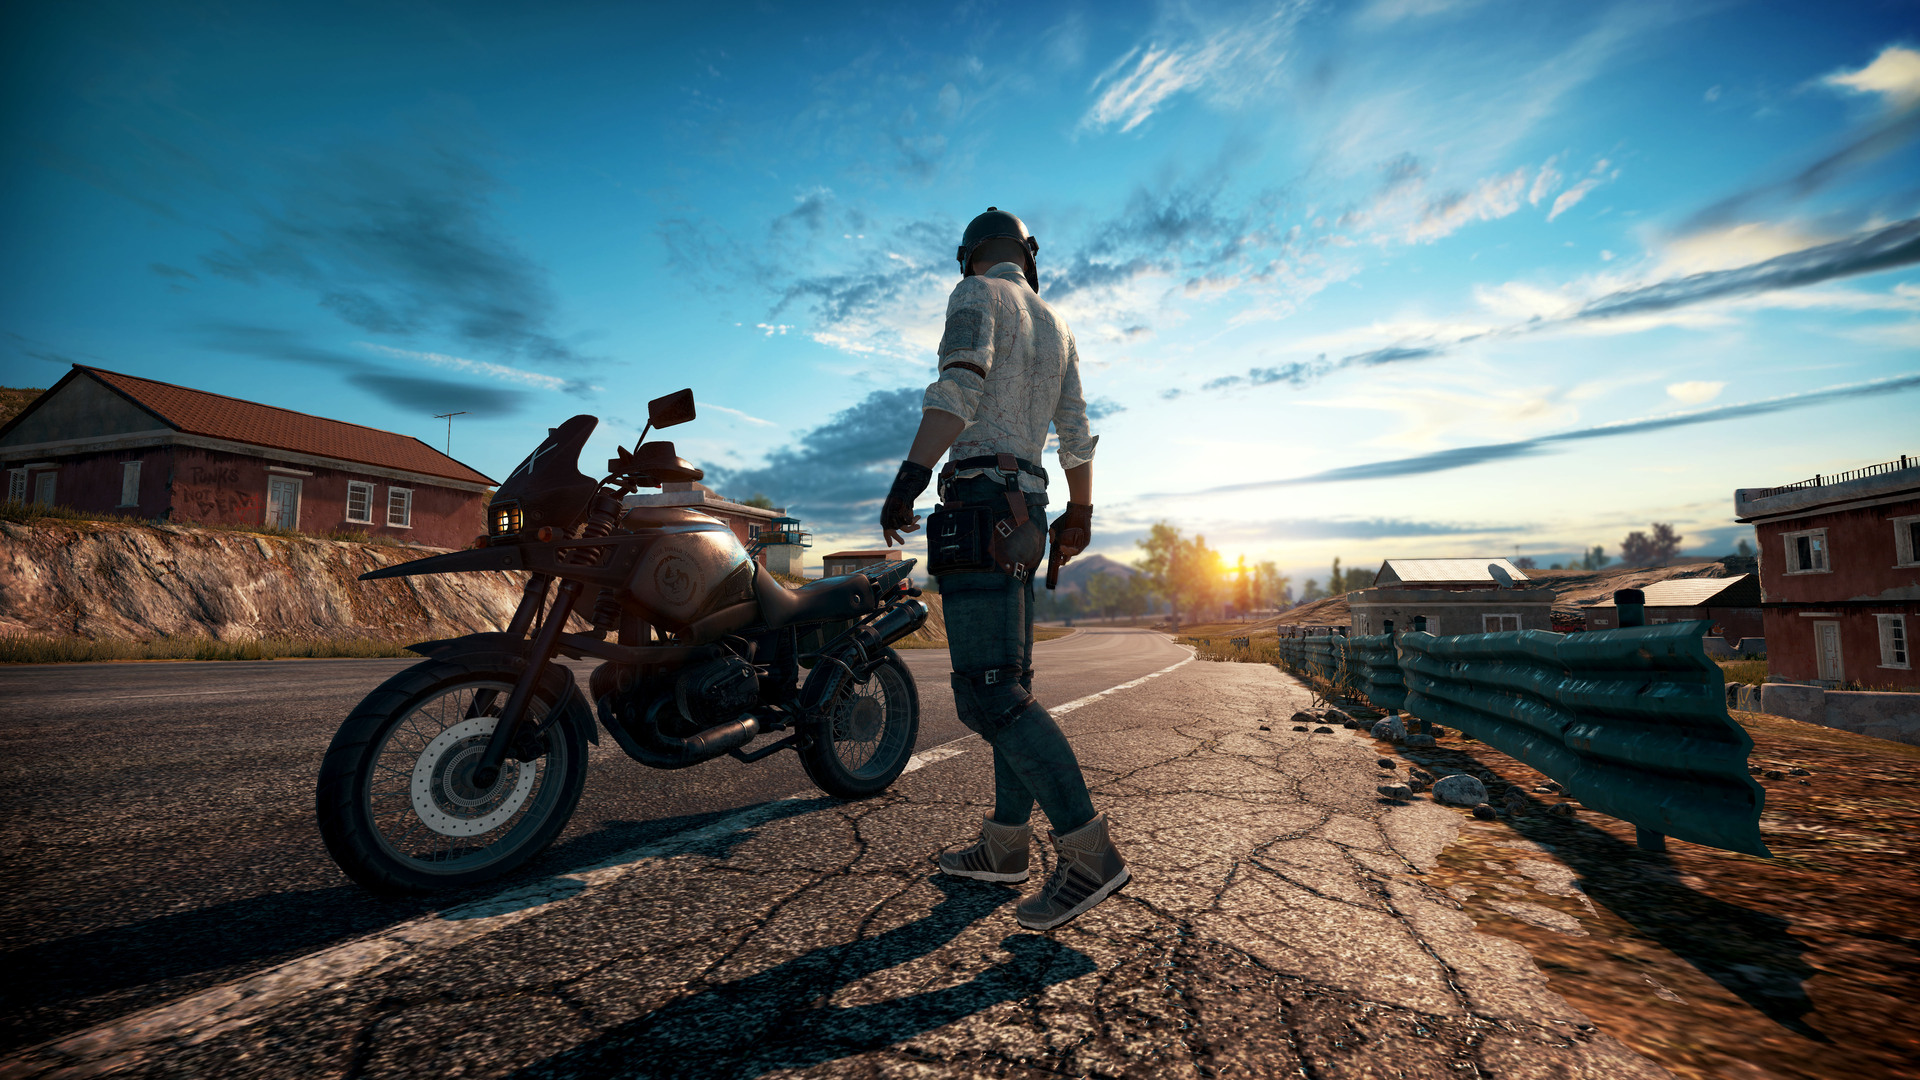 Pubg Wallpaper 1920x1080: 1920x1080 PlayerUnknowns Battlegrounds 5k Screenshot